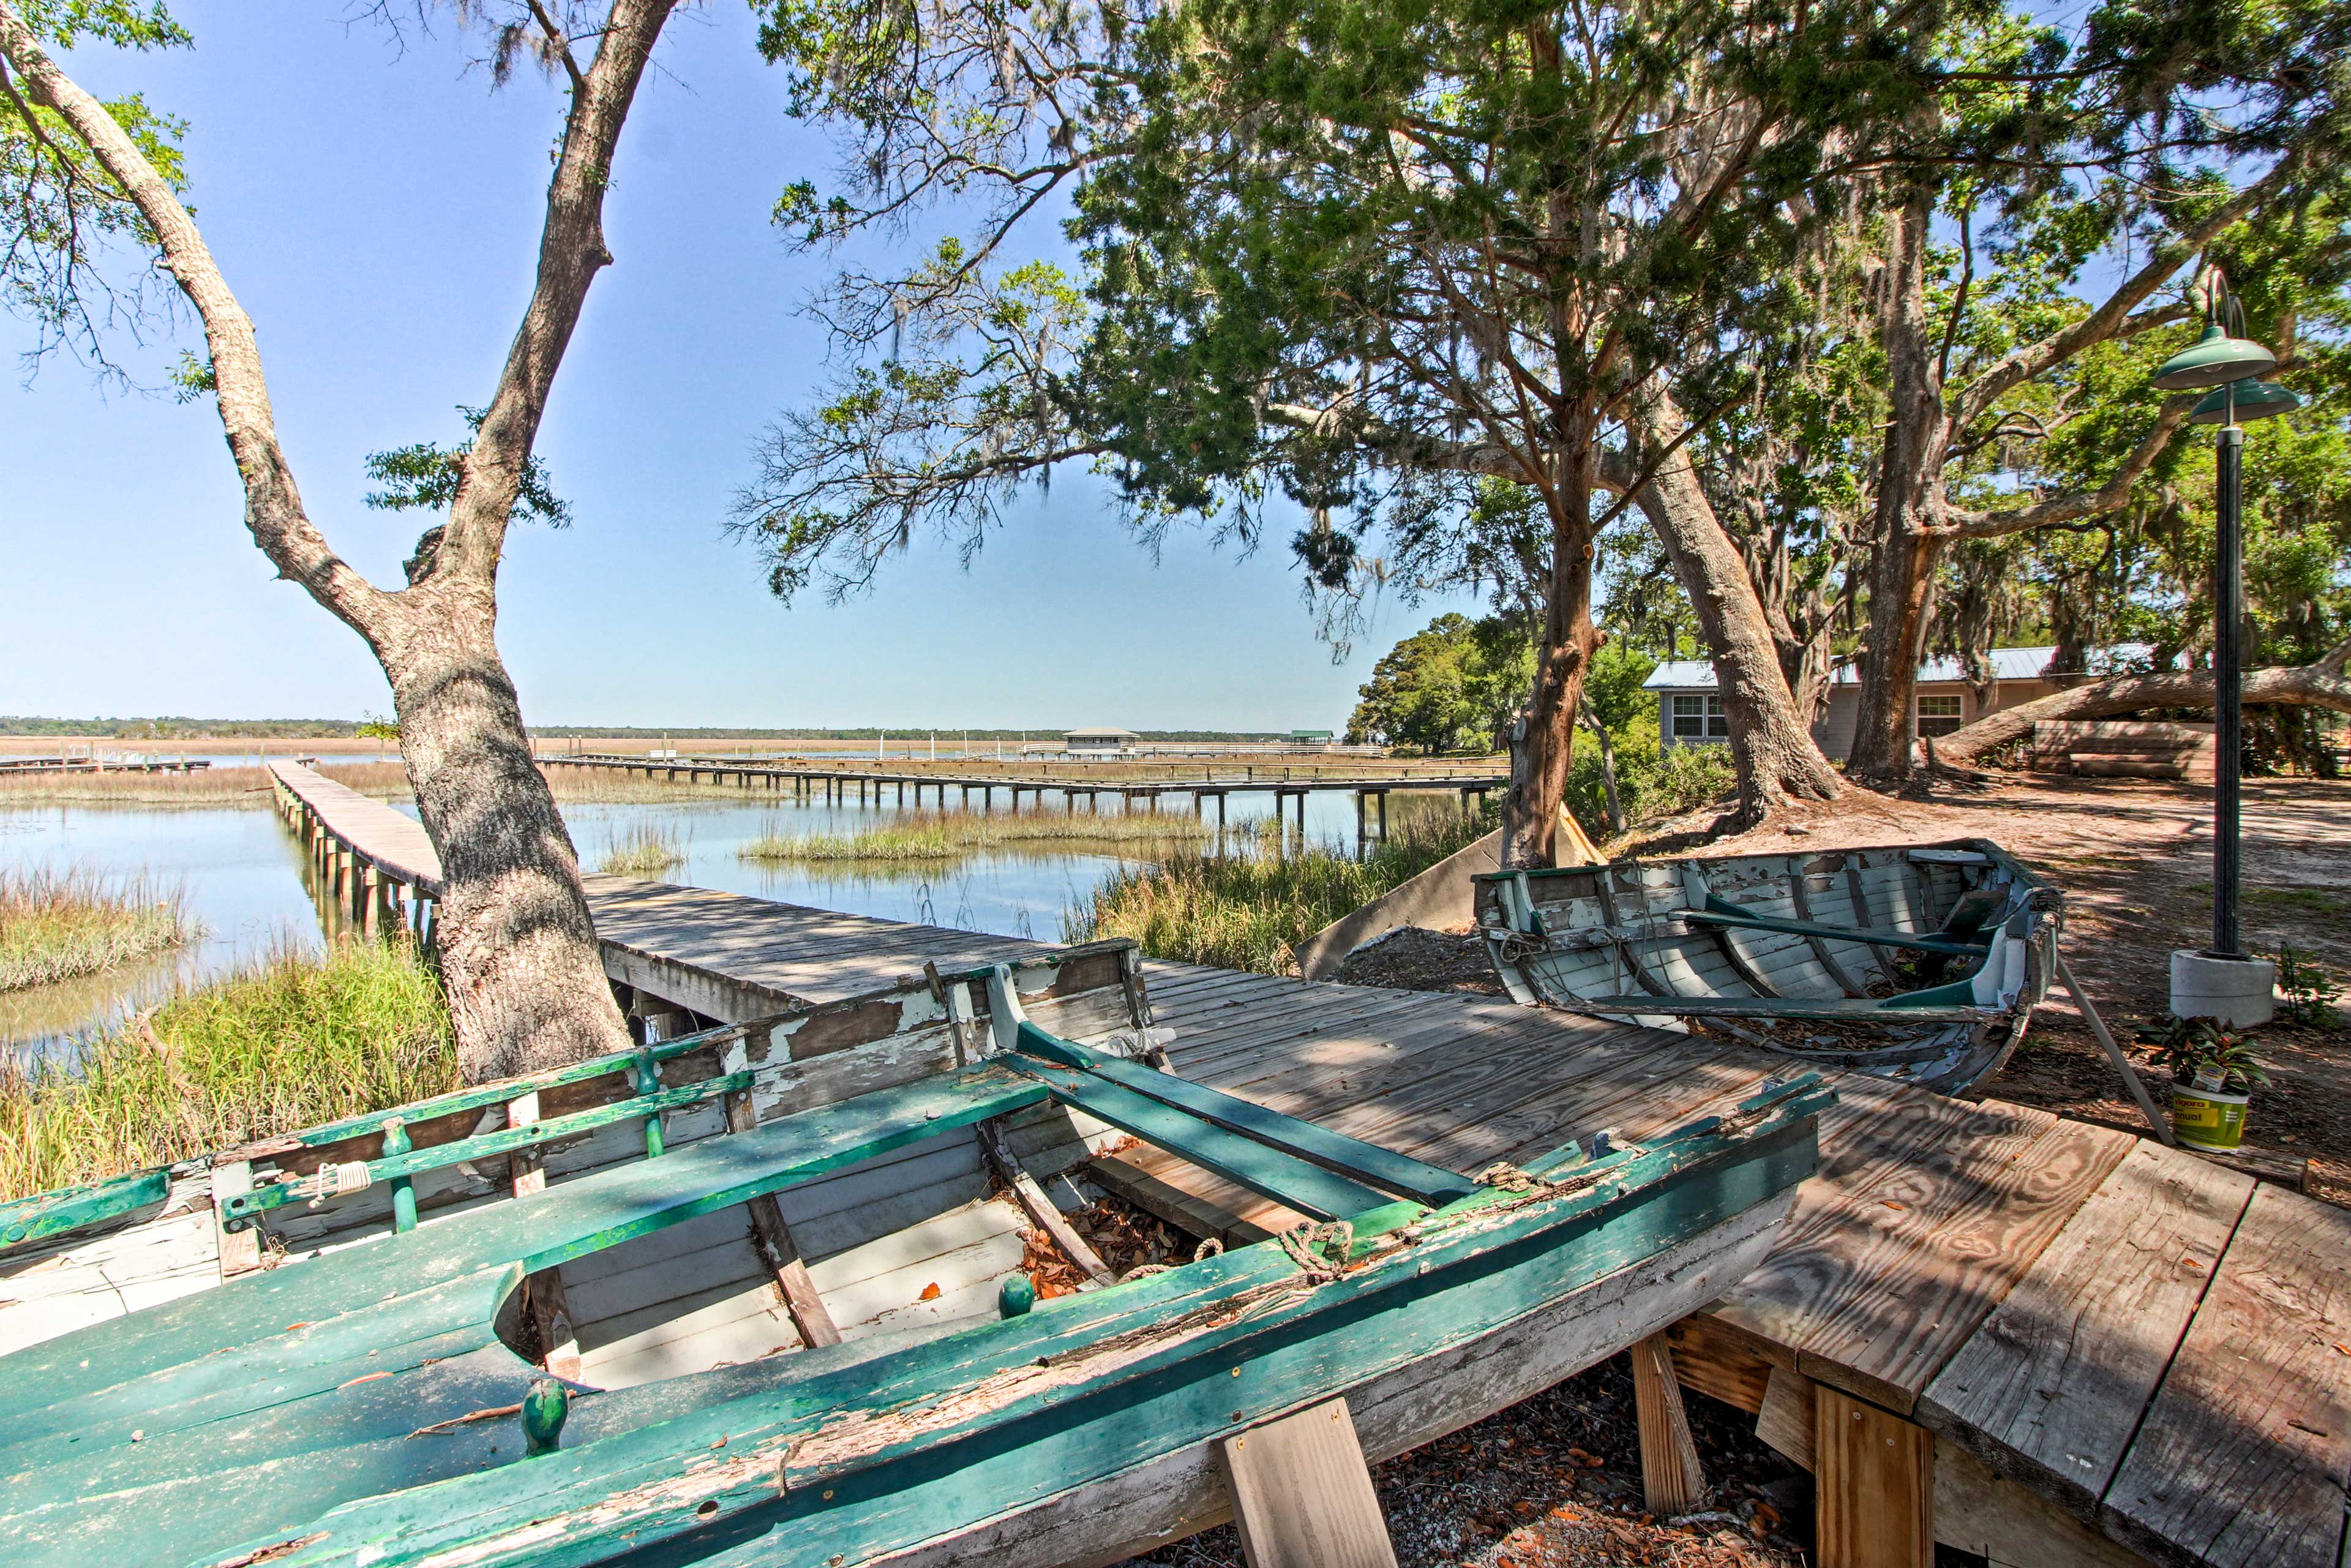 Escape the cool shade of the tree-lined property in search for some Vitamin D!